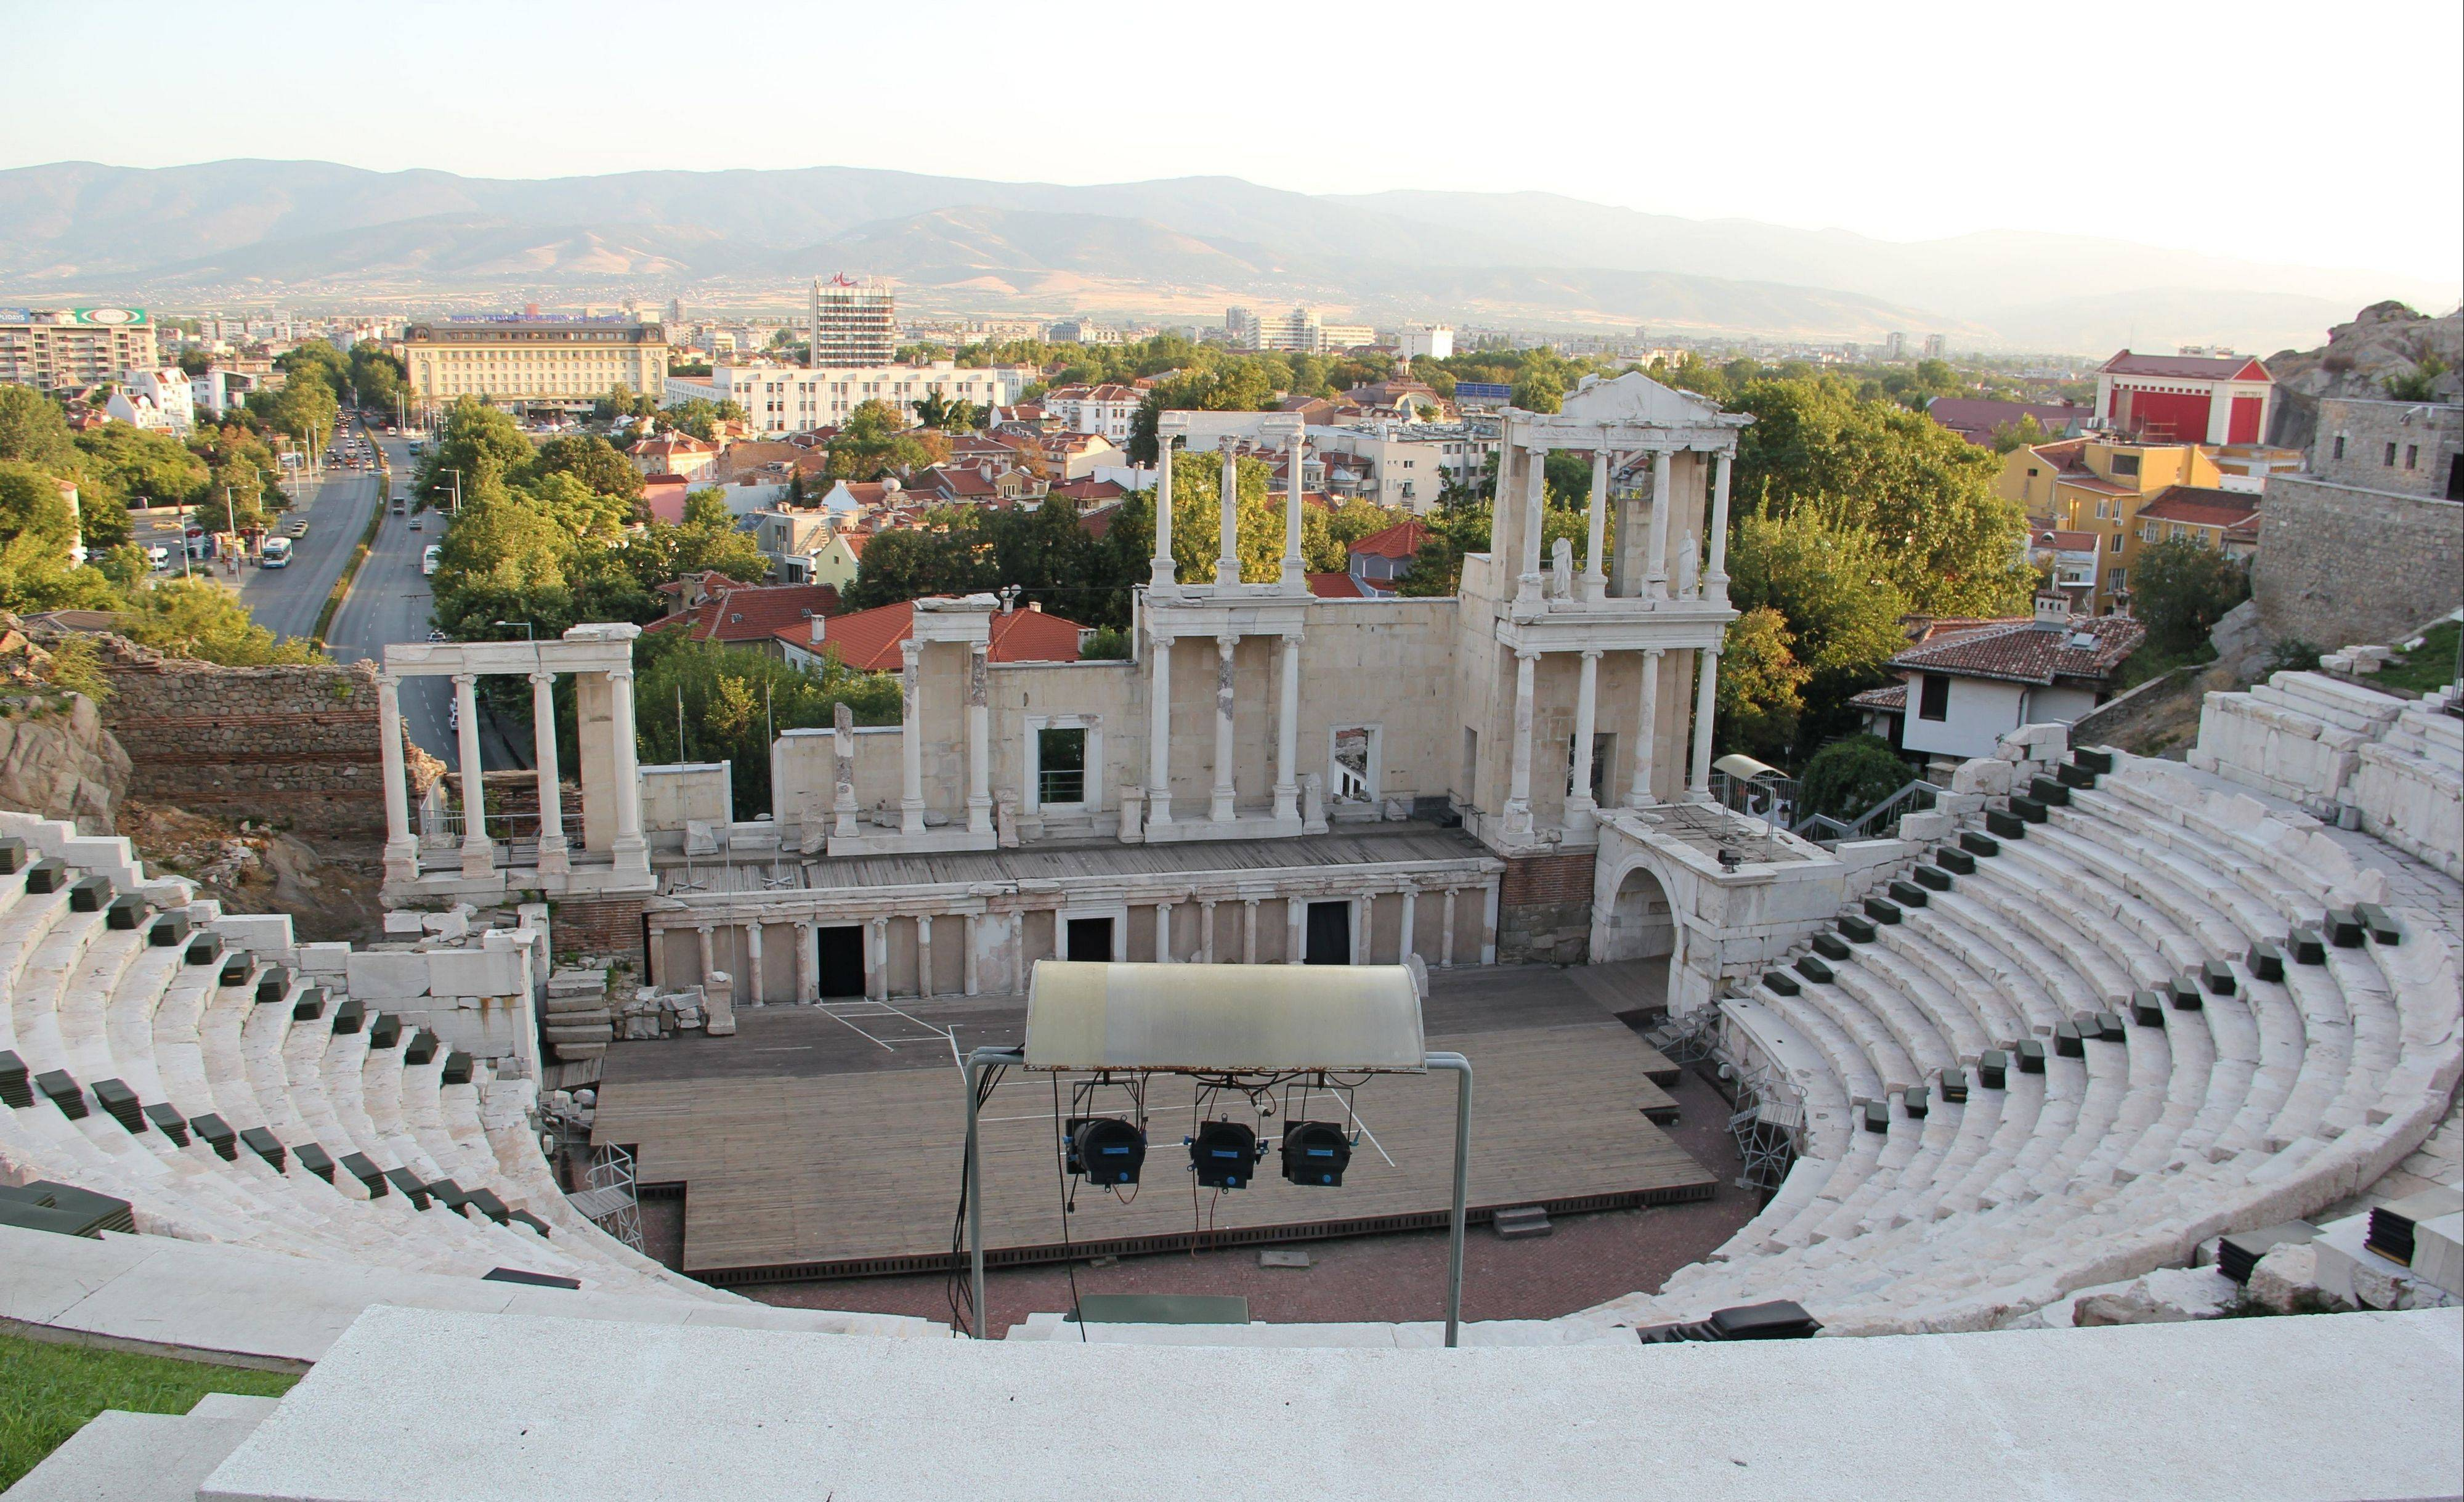 The ancient Roman theater in Plovdiv is one of many antique sites found in Bulgaria.